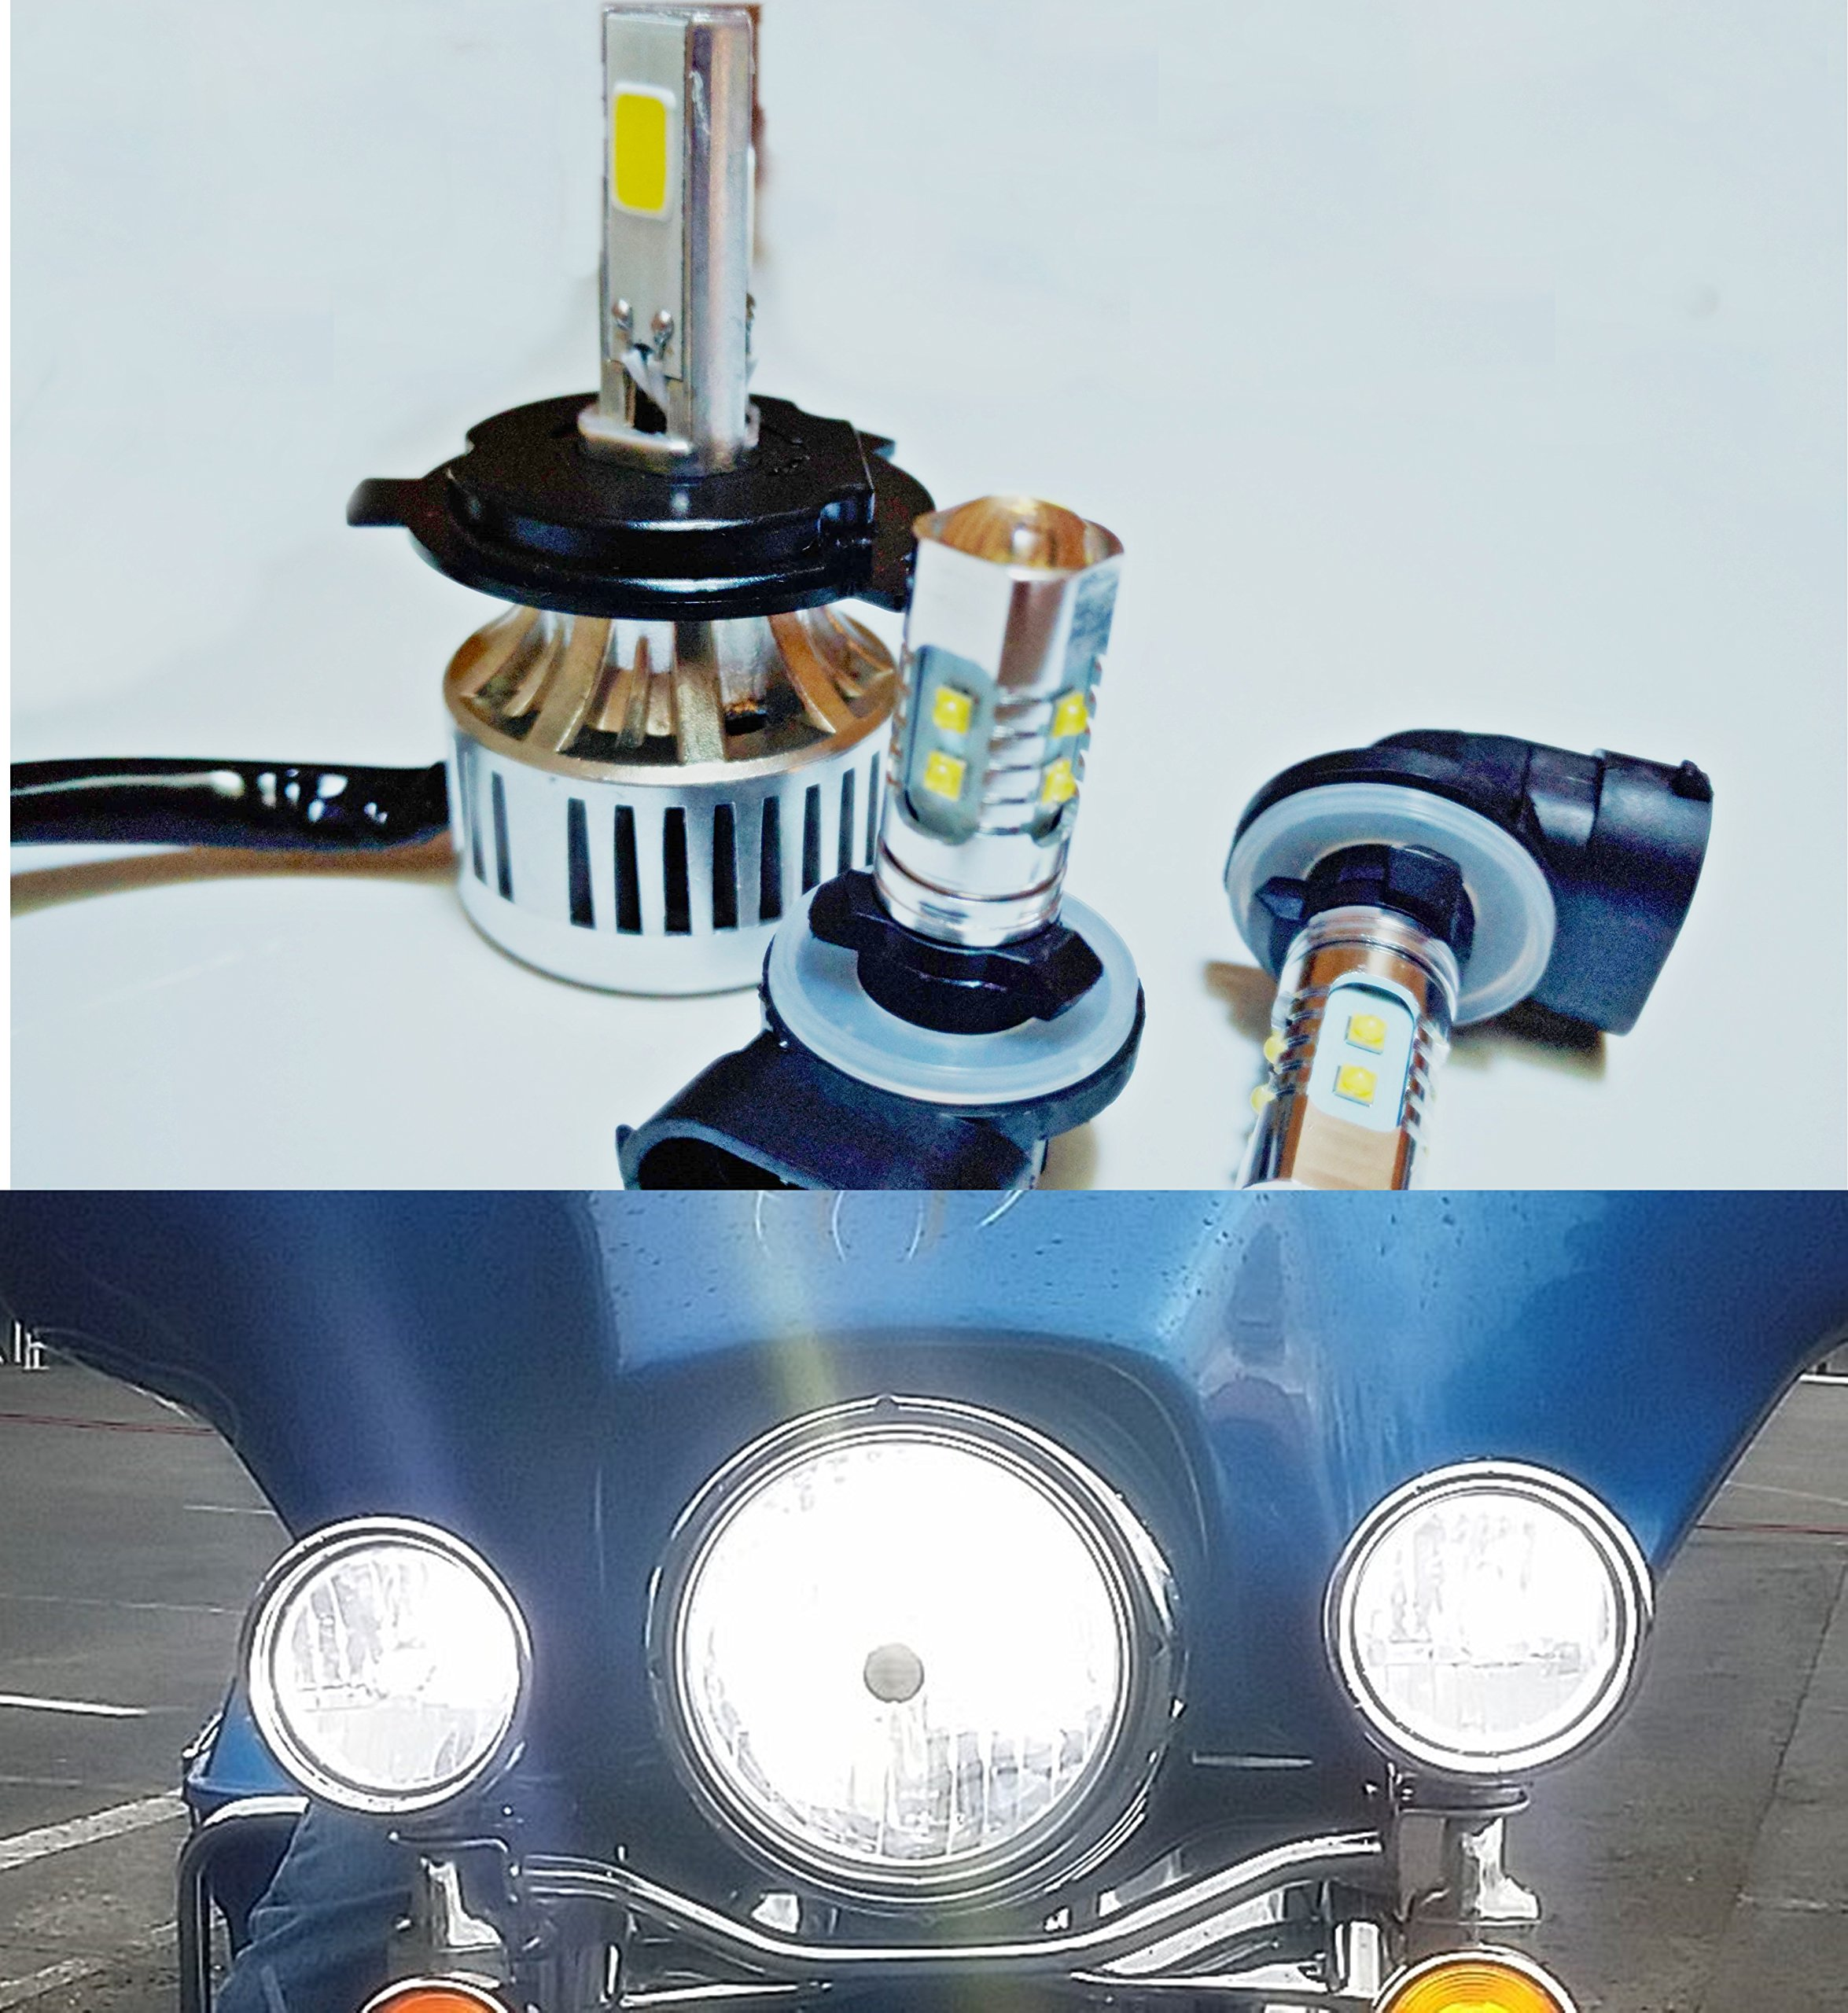 2006 and Up 3 Piece Super Bright Paradise Lights US Ship Harley Electra Glide, Ultra Classic, Heritage, Softail, FLH, FLHX, FLHRS, FLHTC, FLHTCU LED Complete 3 Bulb Set by Paradise Lights LLC